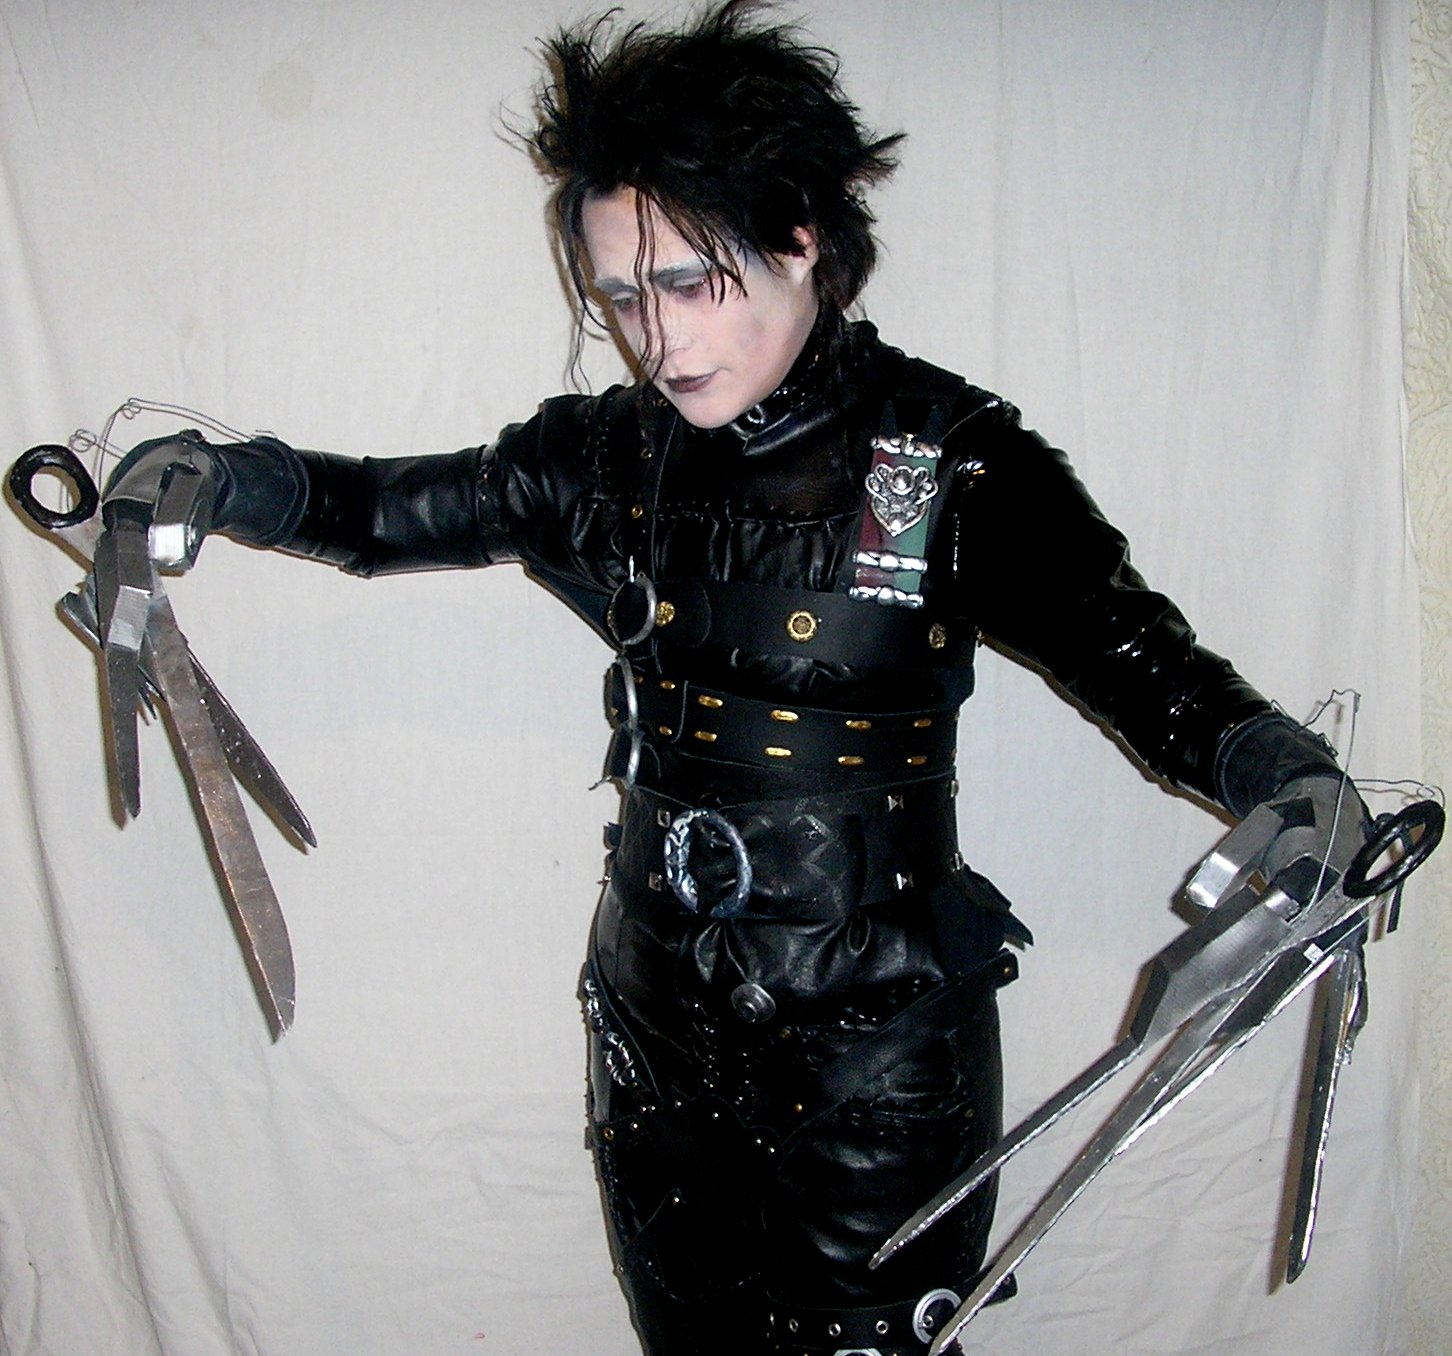 Edward_Scissorhands_by_deppalike[1]